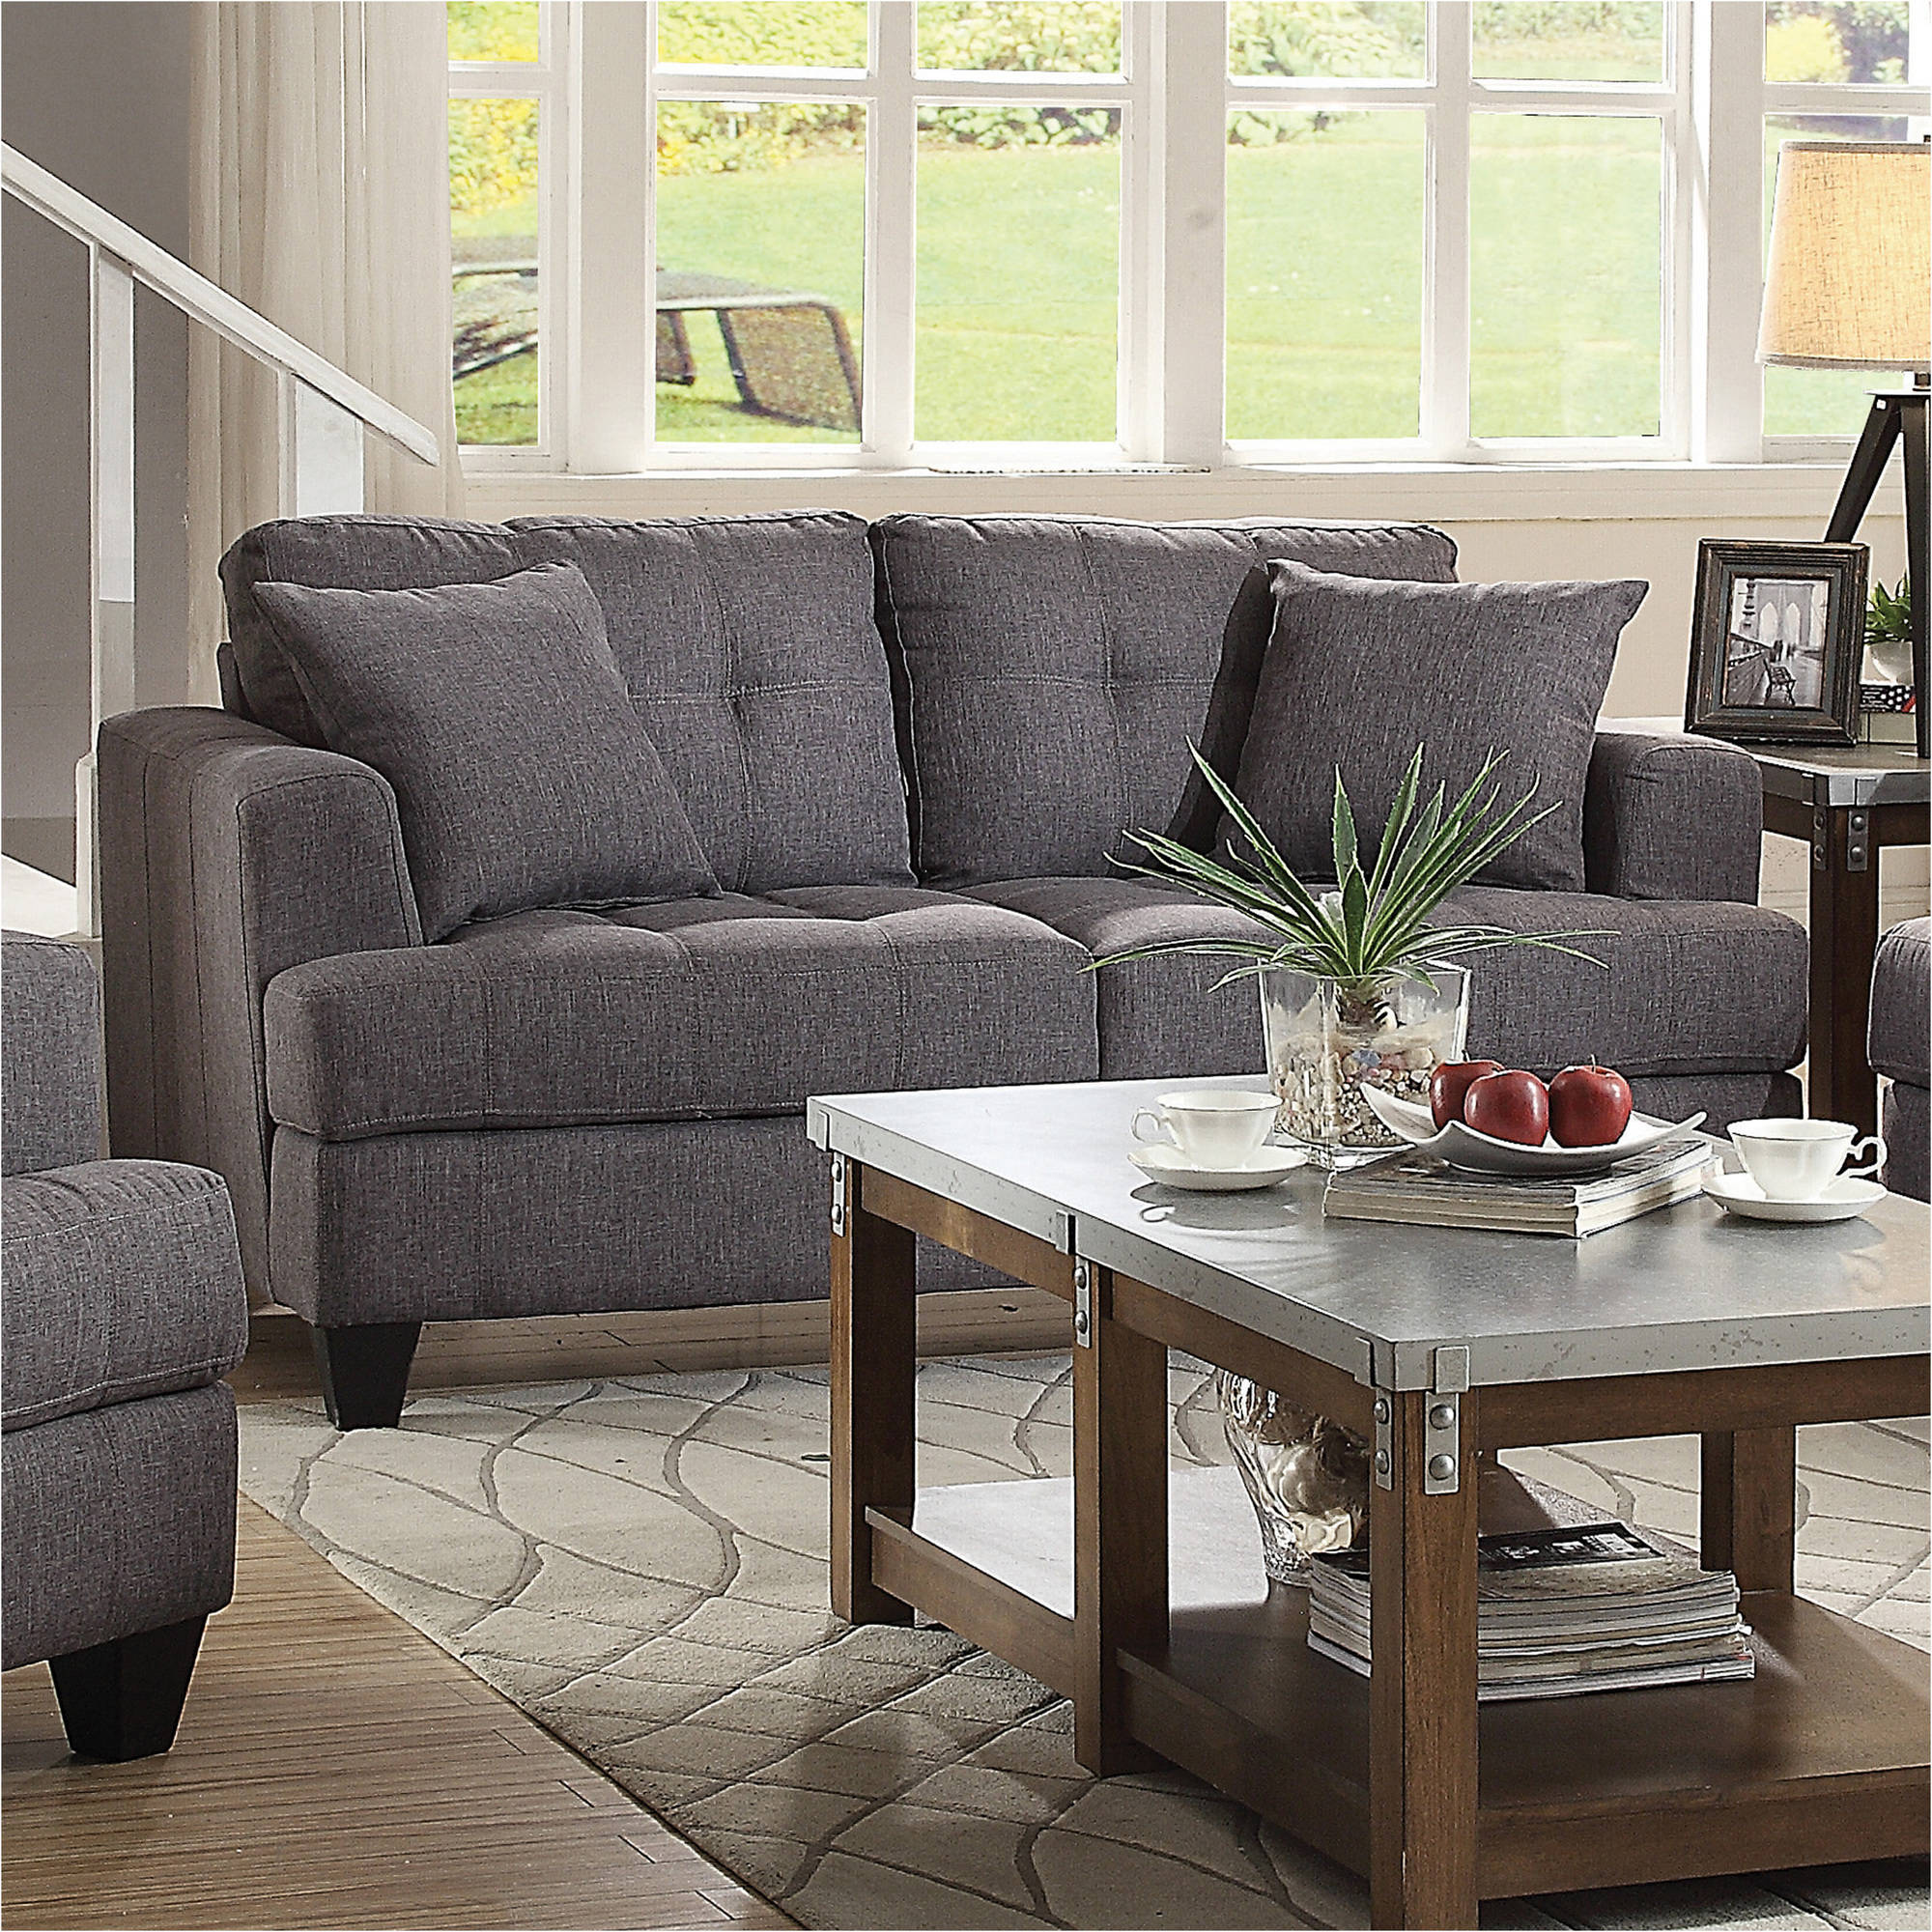 Coaster Samuel Transitional Loveseat, Multiple Colors